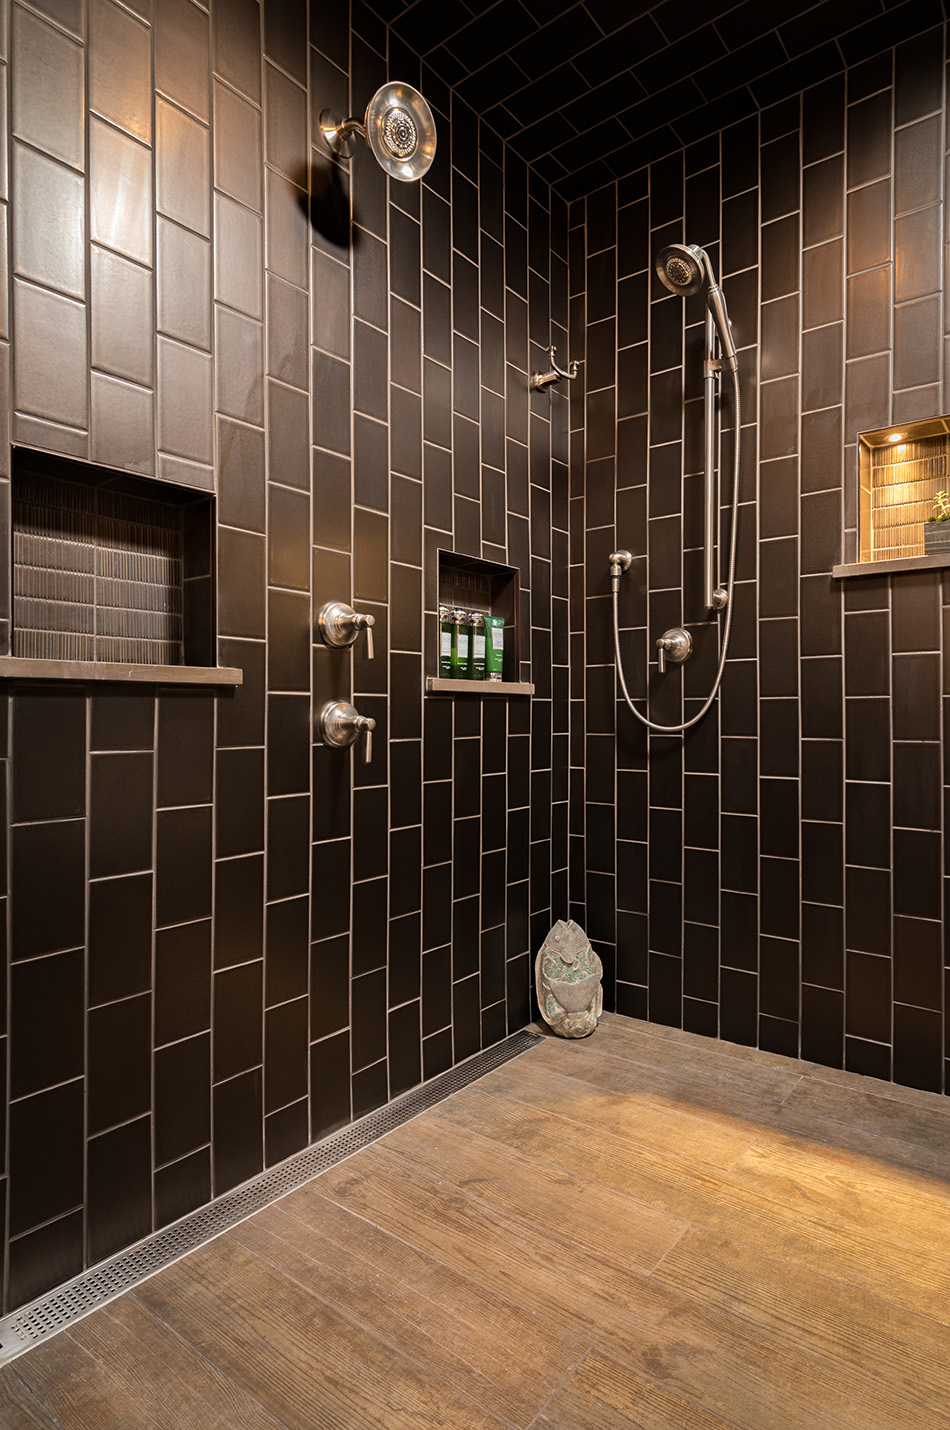 large-shower-linear-drain-niche-built-in-multiple-shower-heads-buddha-milwaukee